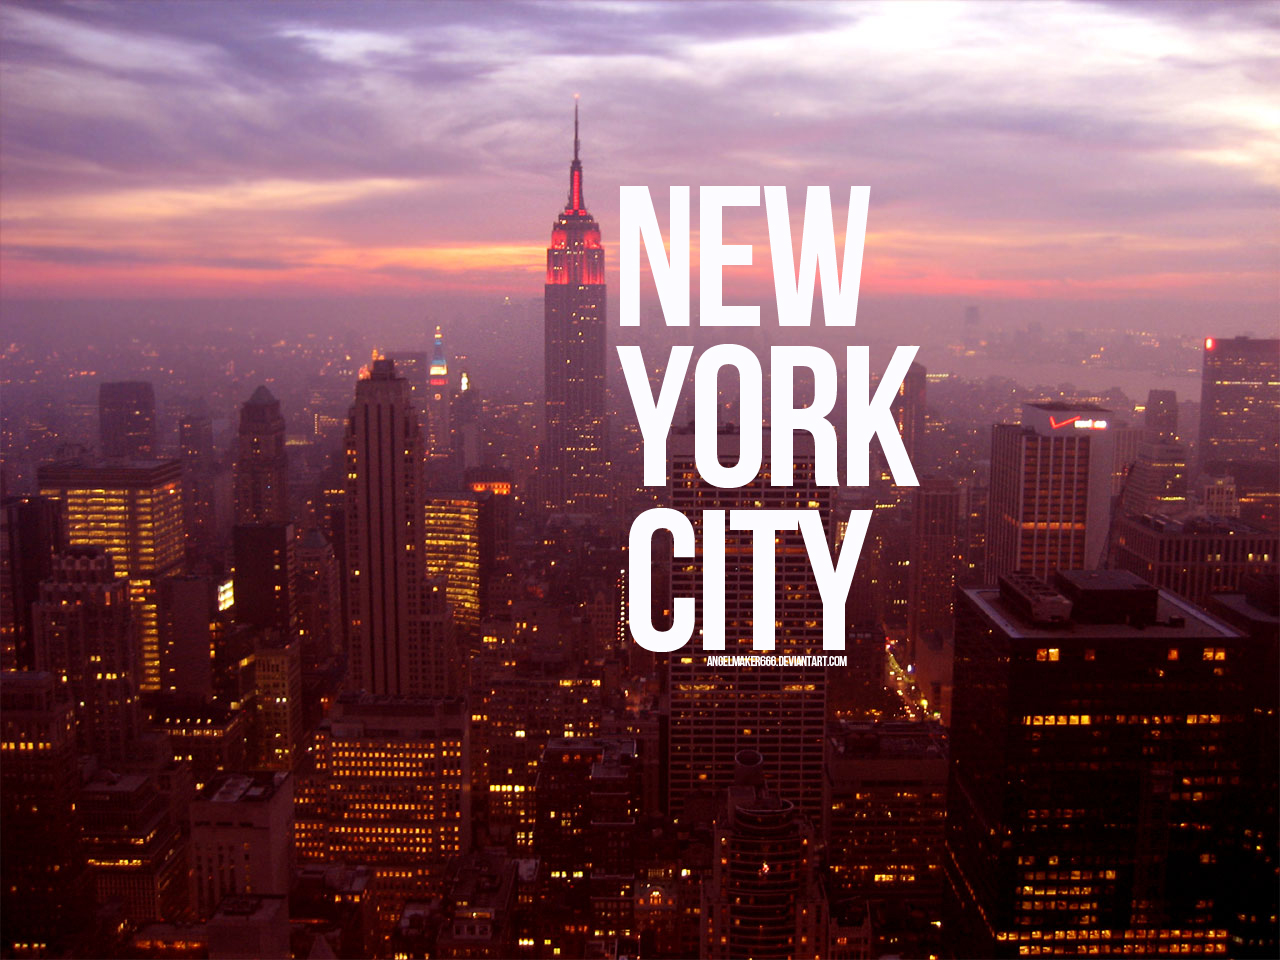 New York City Wallpaper by IshaanMishra 1280x960